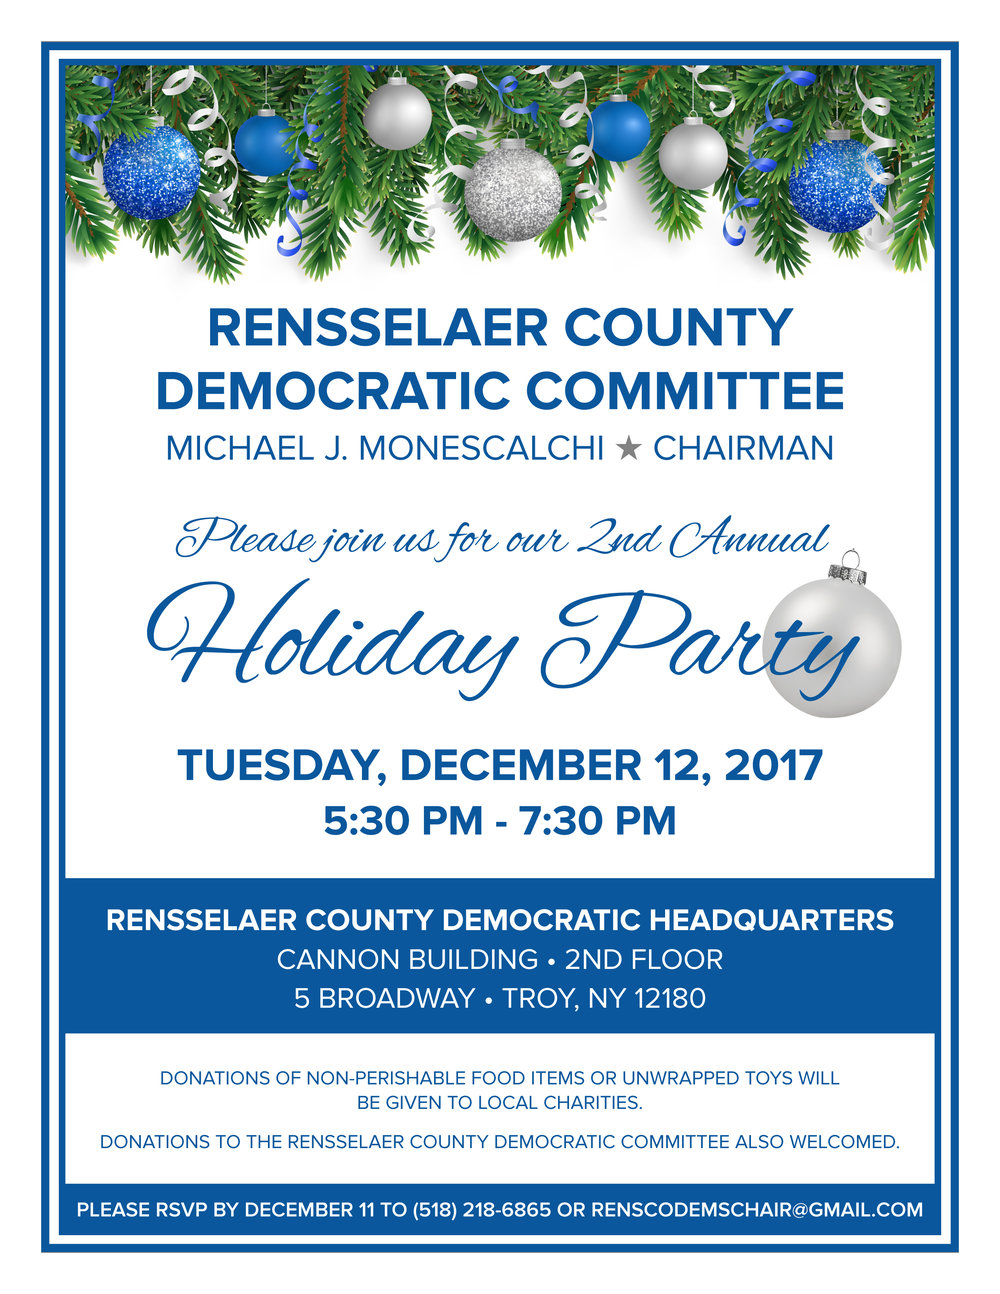 Rensselaer County Democrats 2017 Holiday Party Invitation.jpg